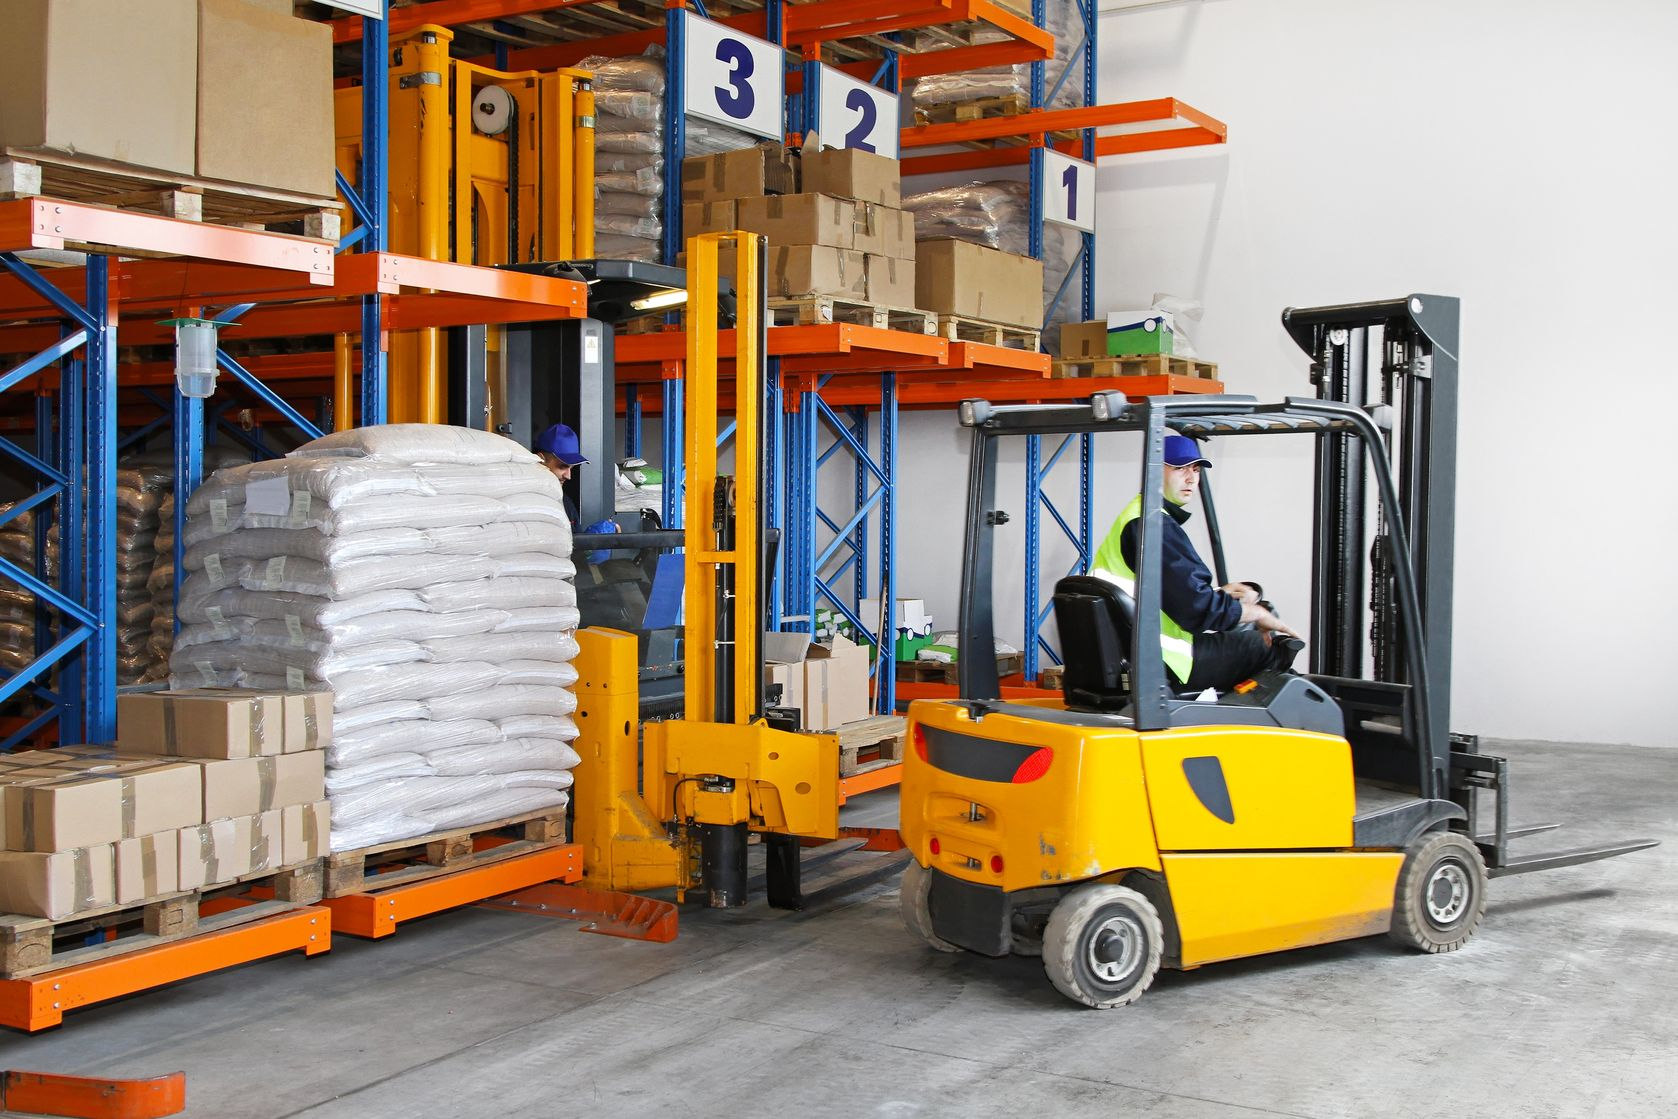 Sacramento Wholesale Distribution Insurance